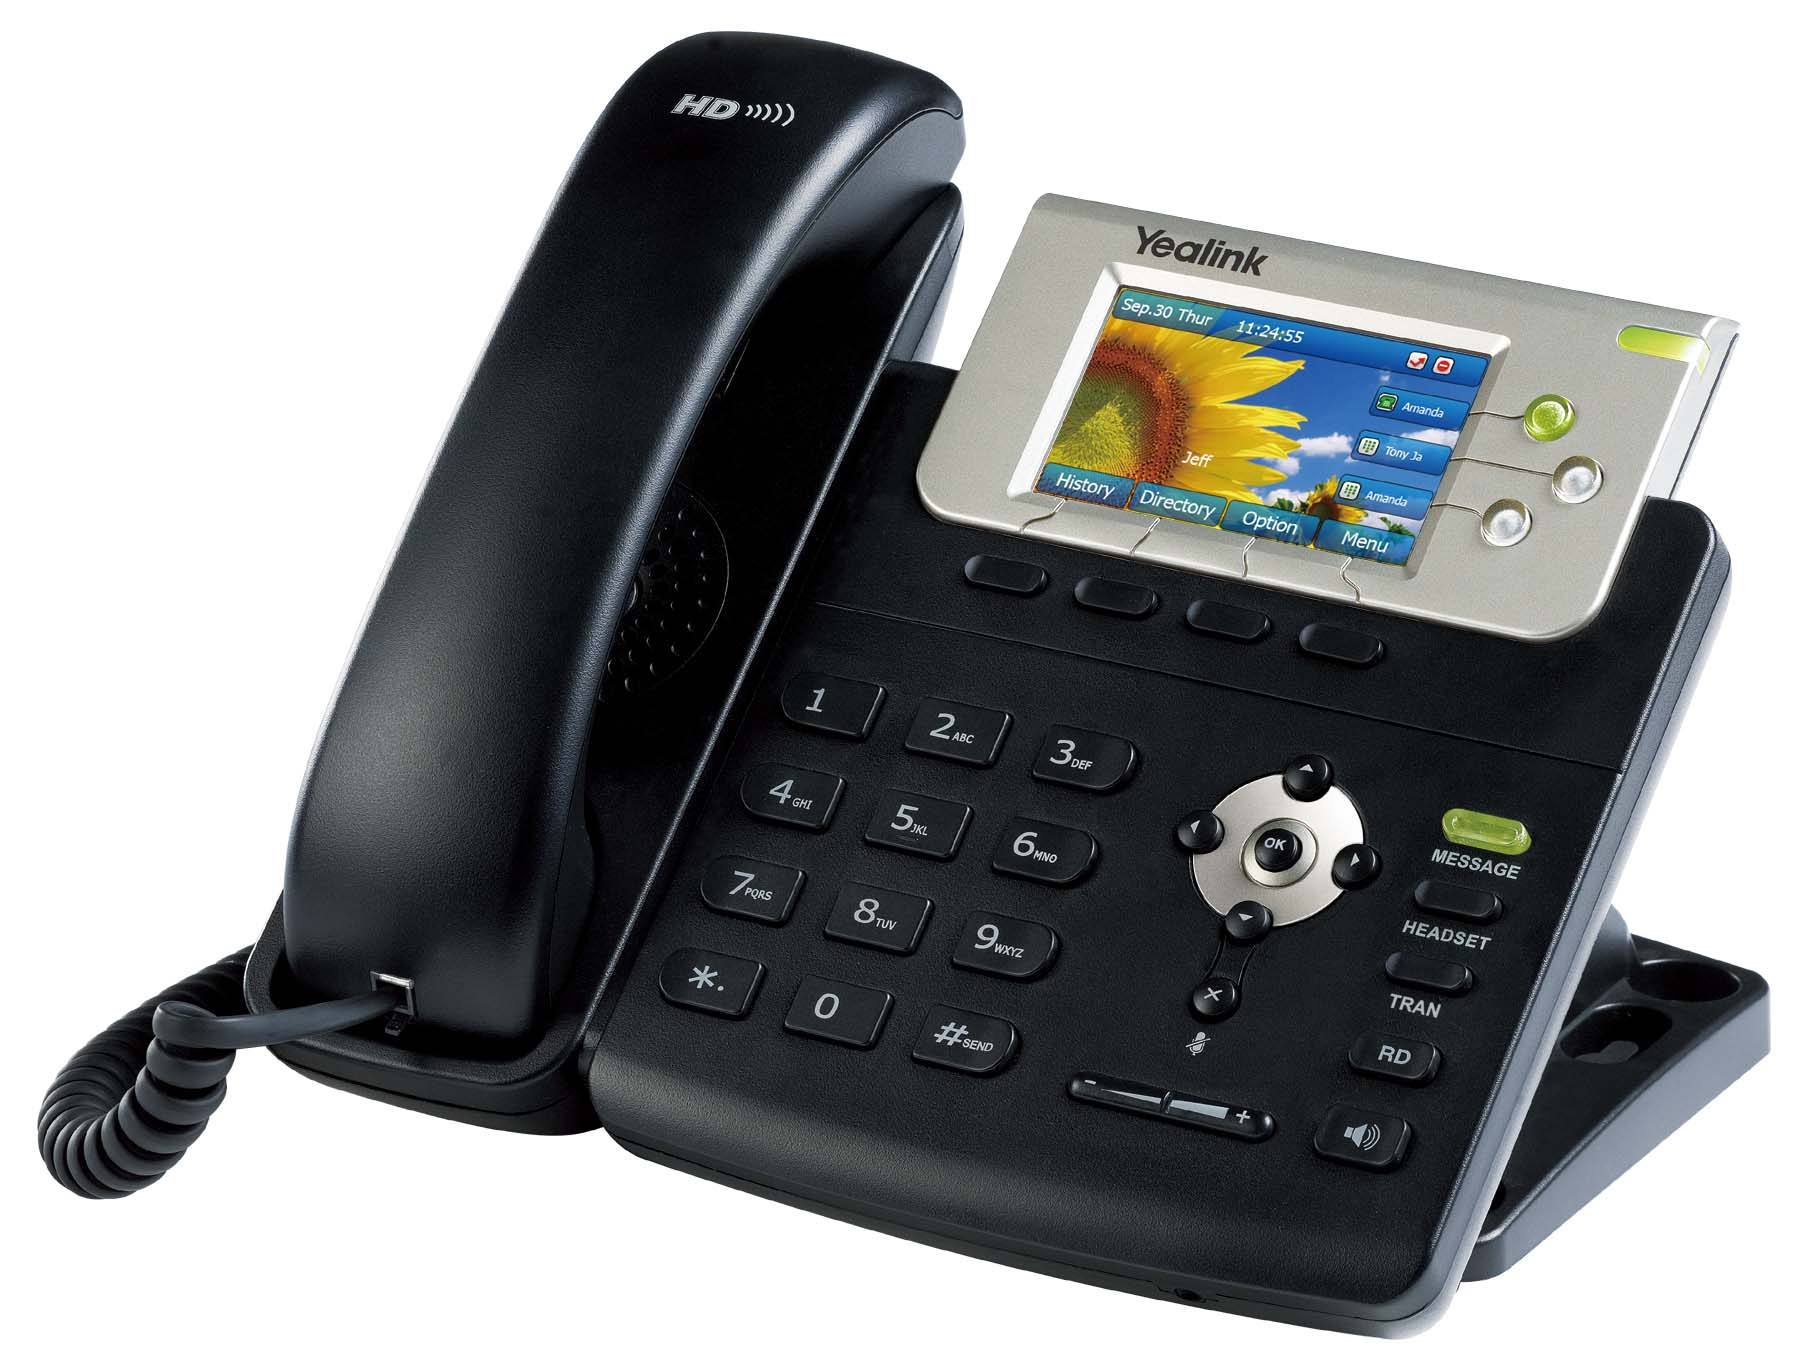 Yealink T32gn Colour Screen Ip Phone With Gig Ethernet